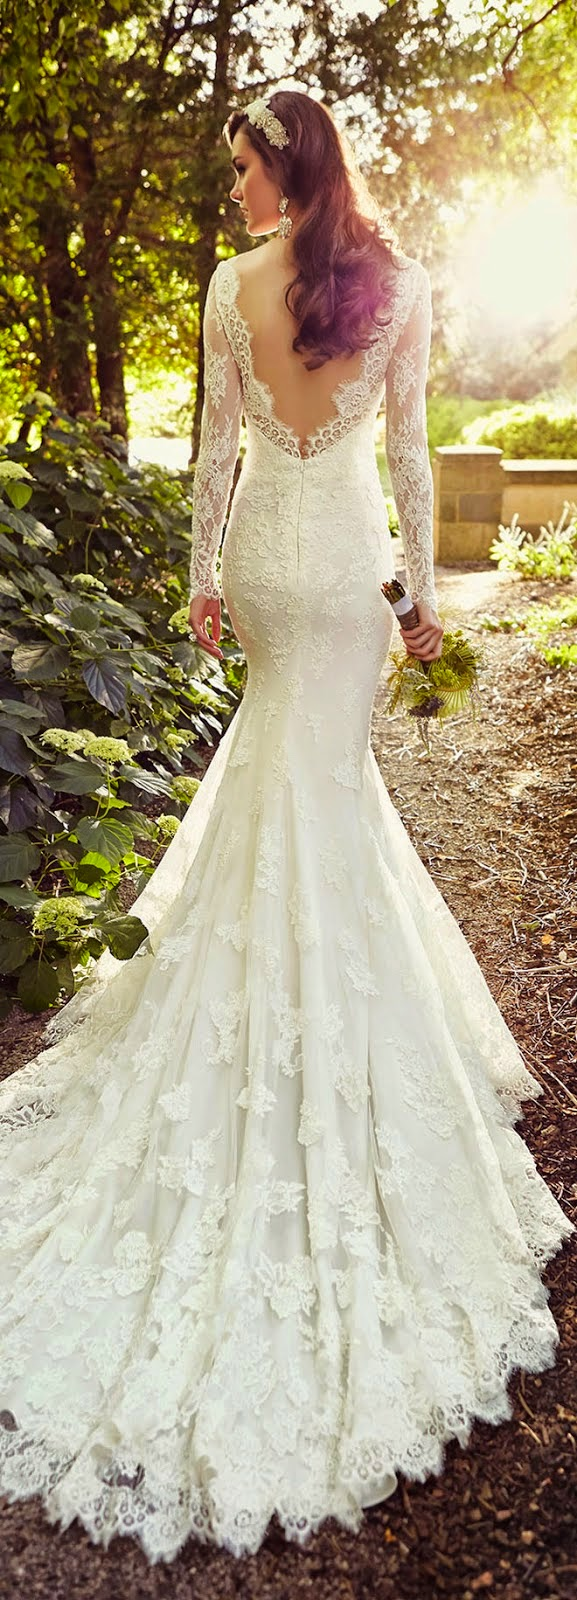 Spectacular Winter Wedding Dresses